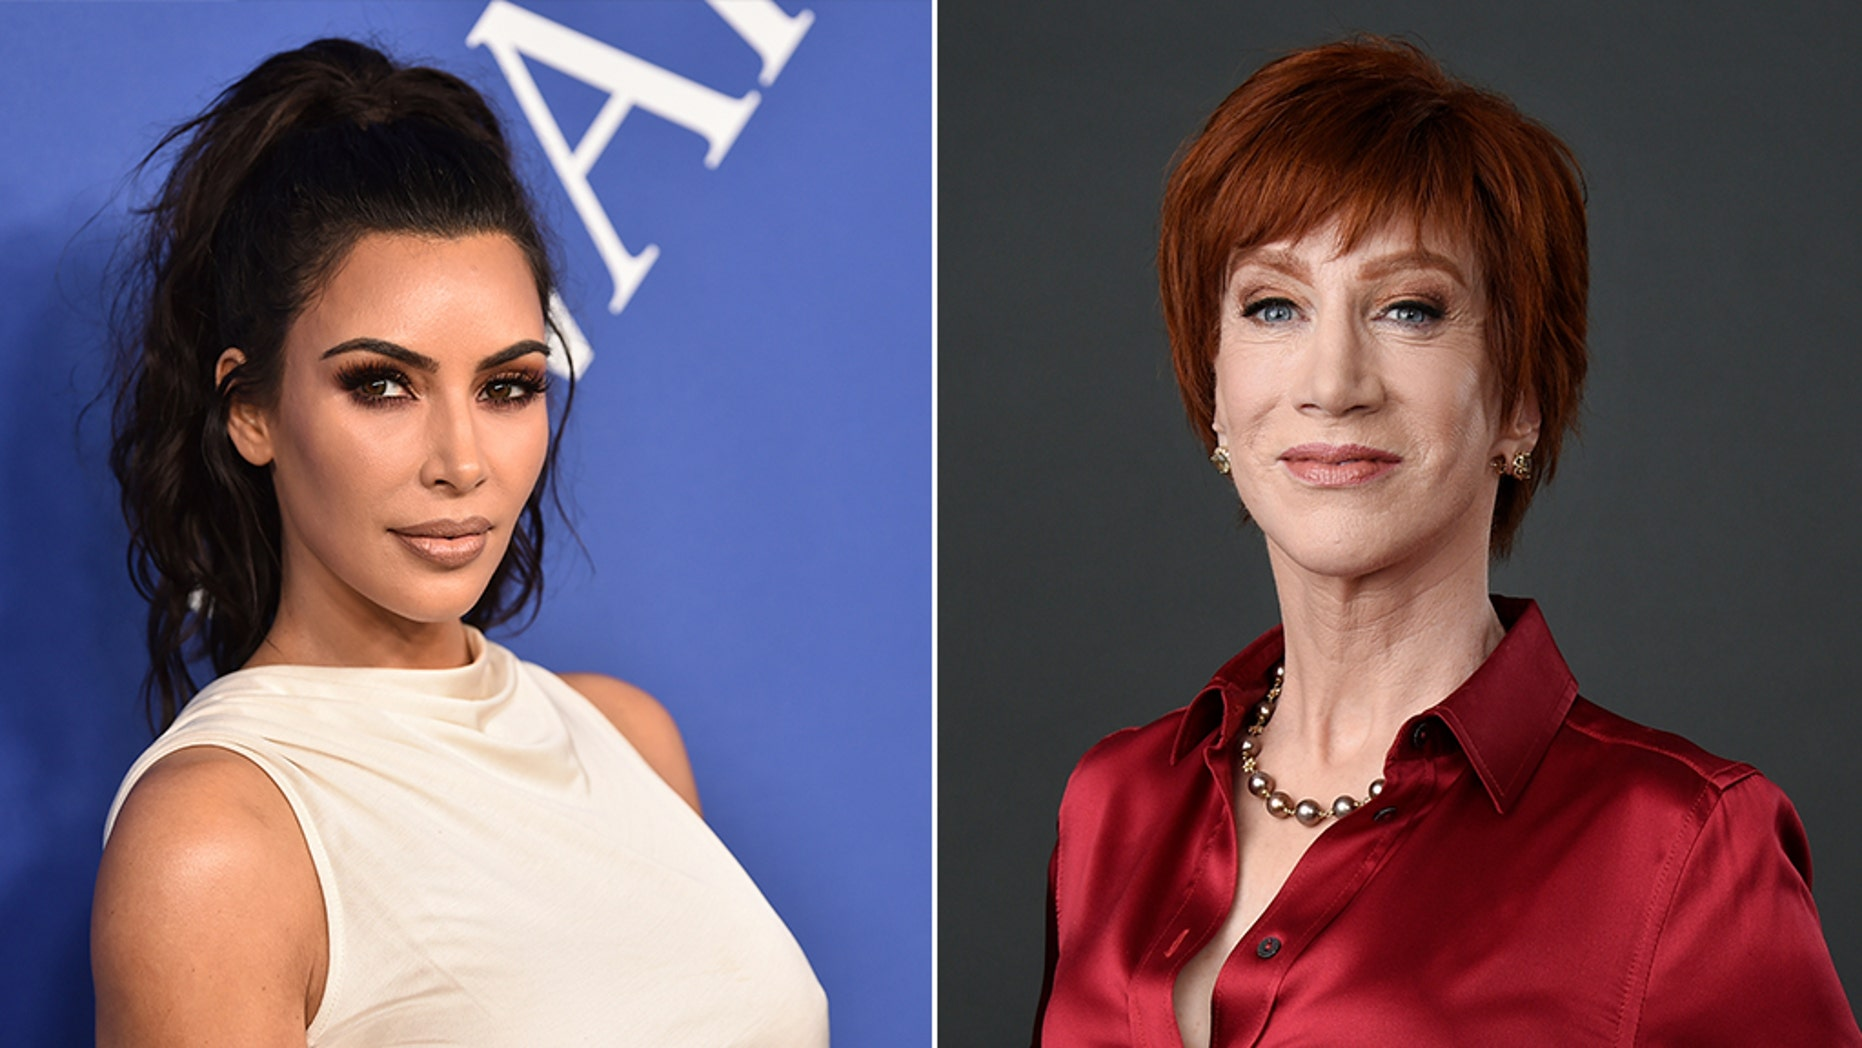 Kathy Griffin, right, reportedly suggested Kim Kardashian West, left, run for president in 2020.